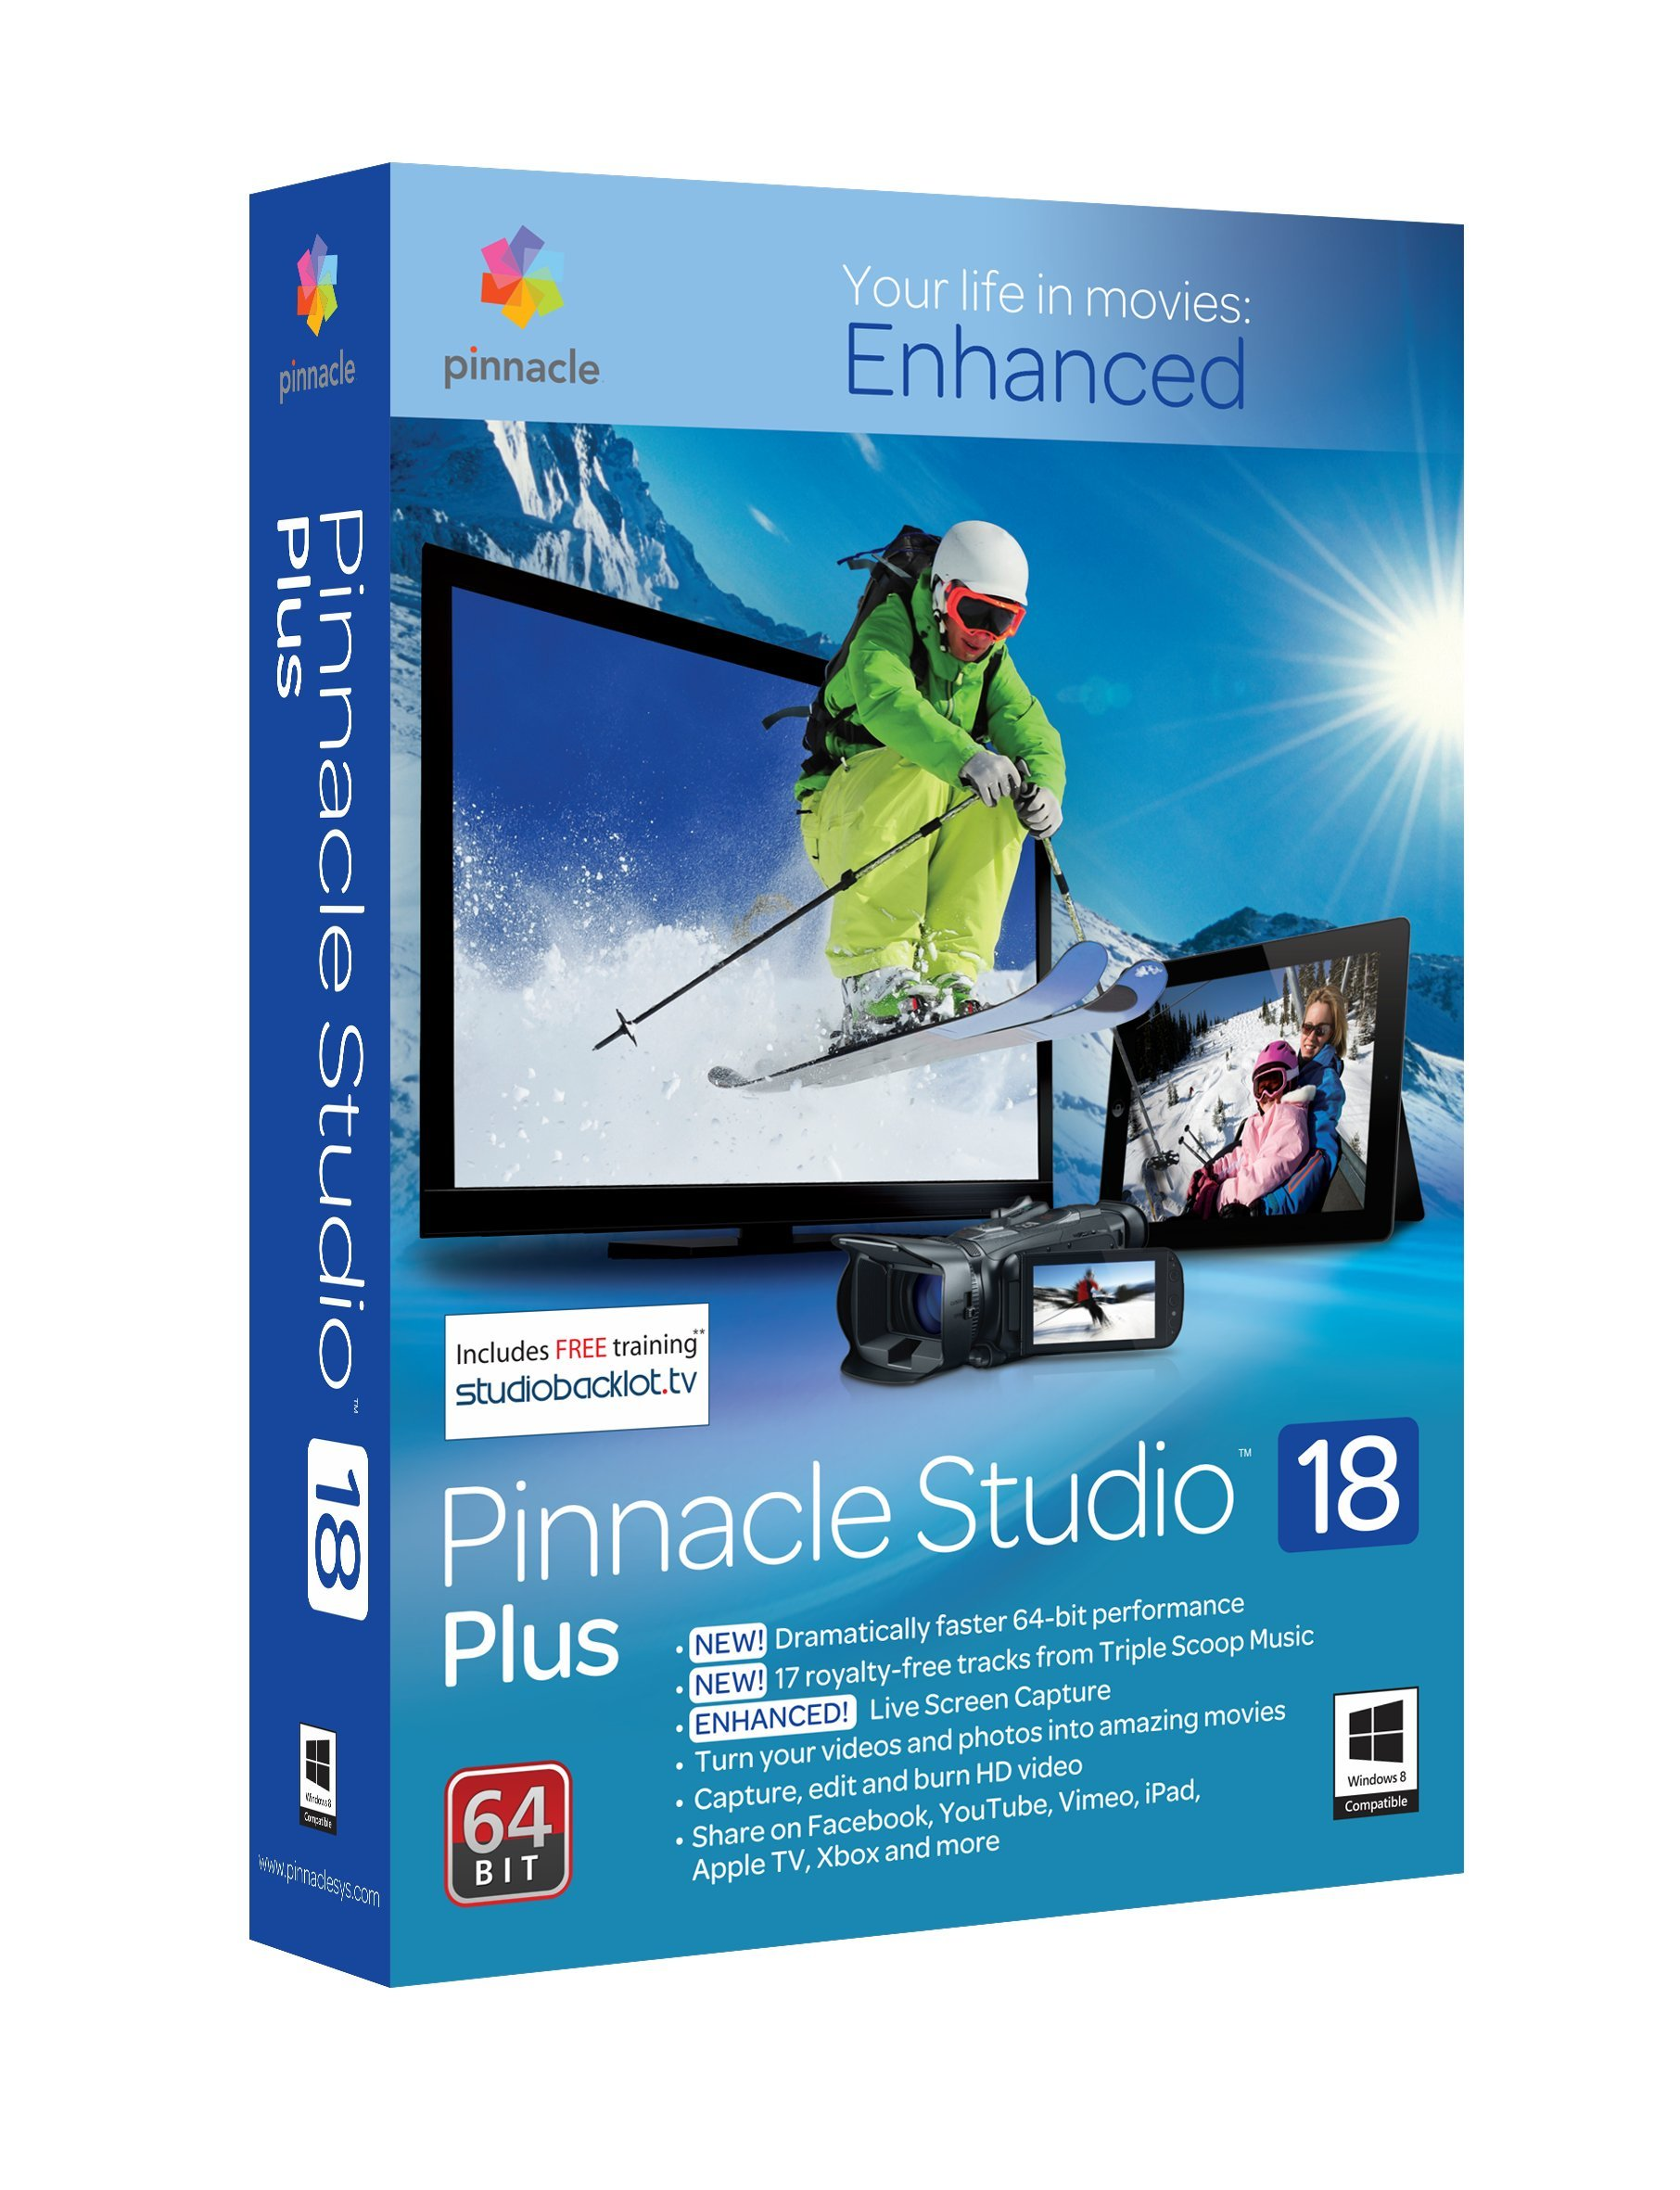 pinnacle studio 12 windows 10 compatibility